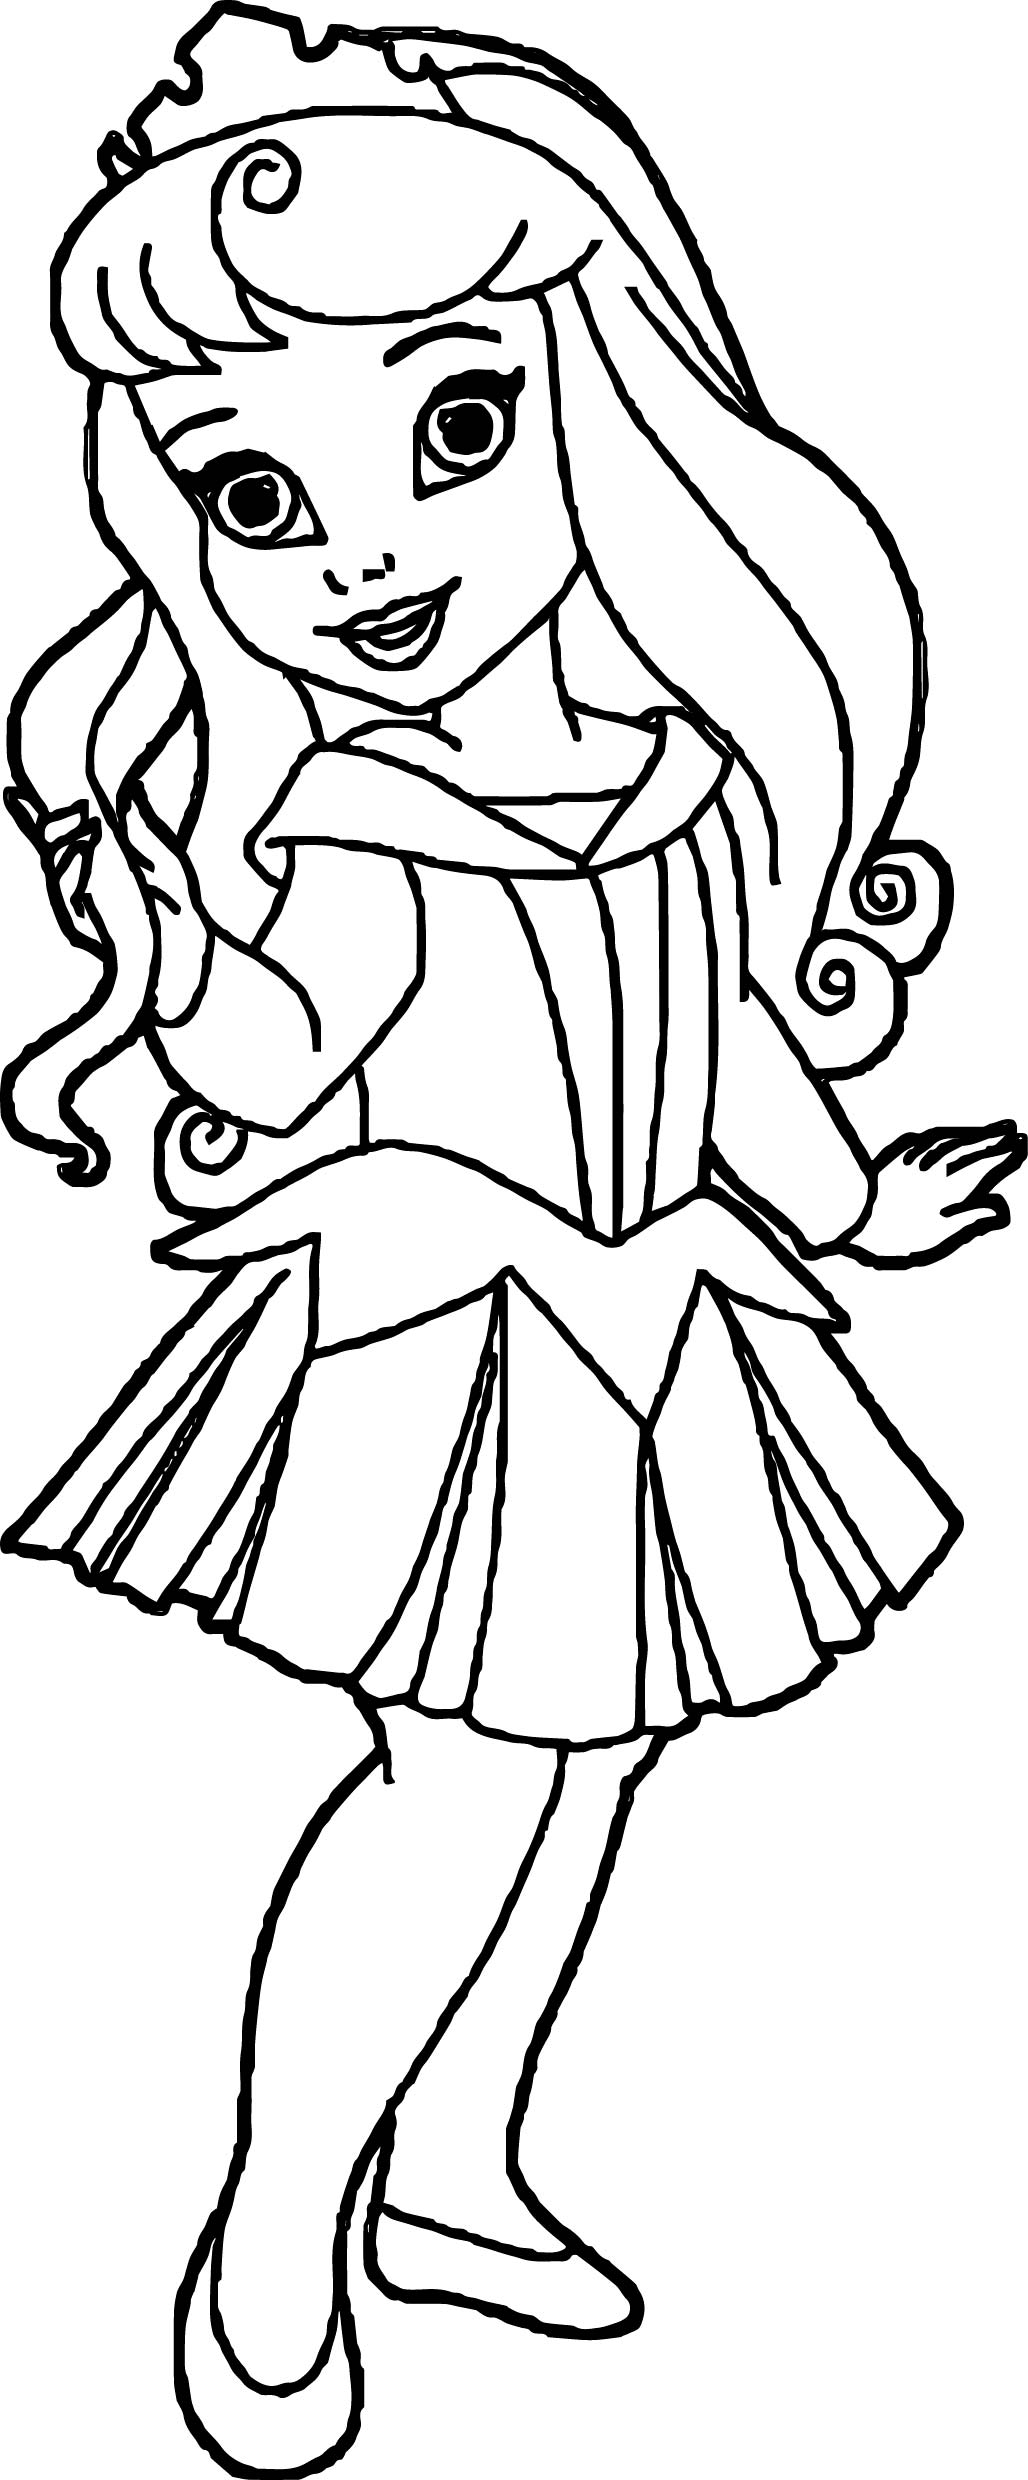 Small Kid Princess Coloring Page